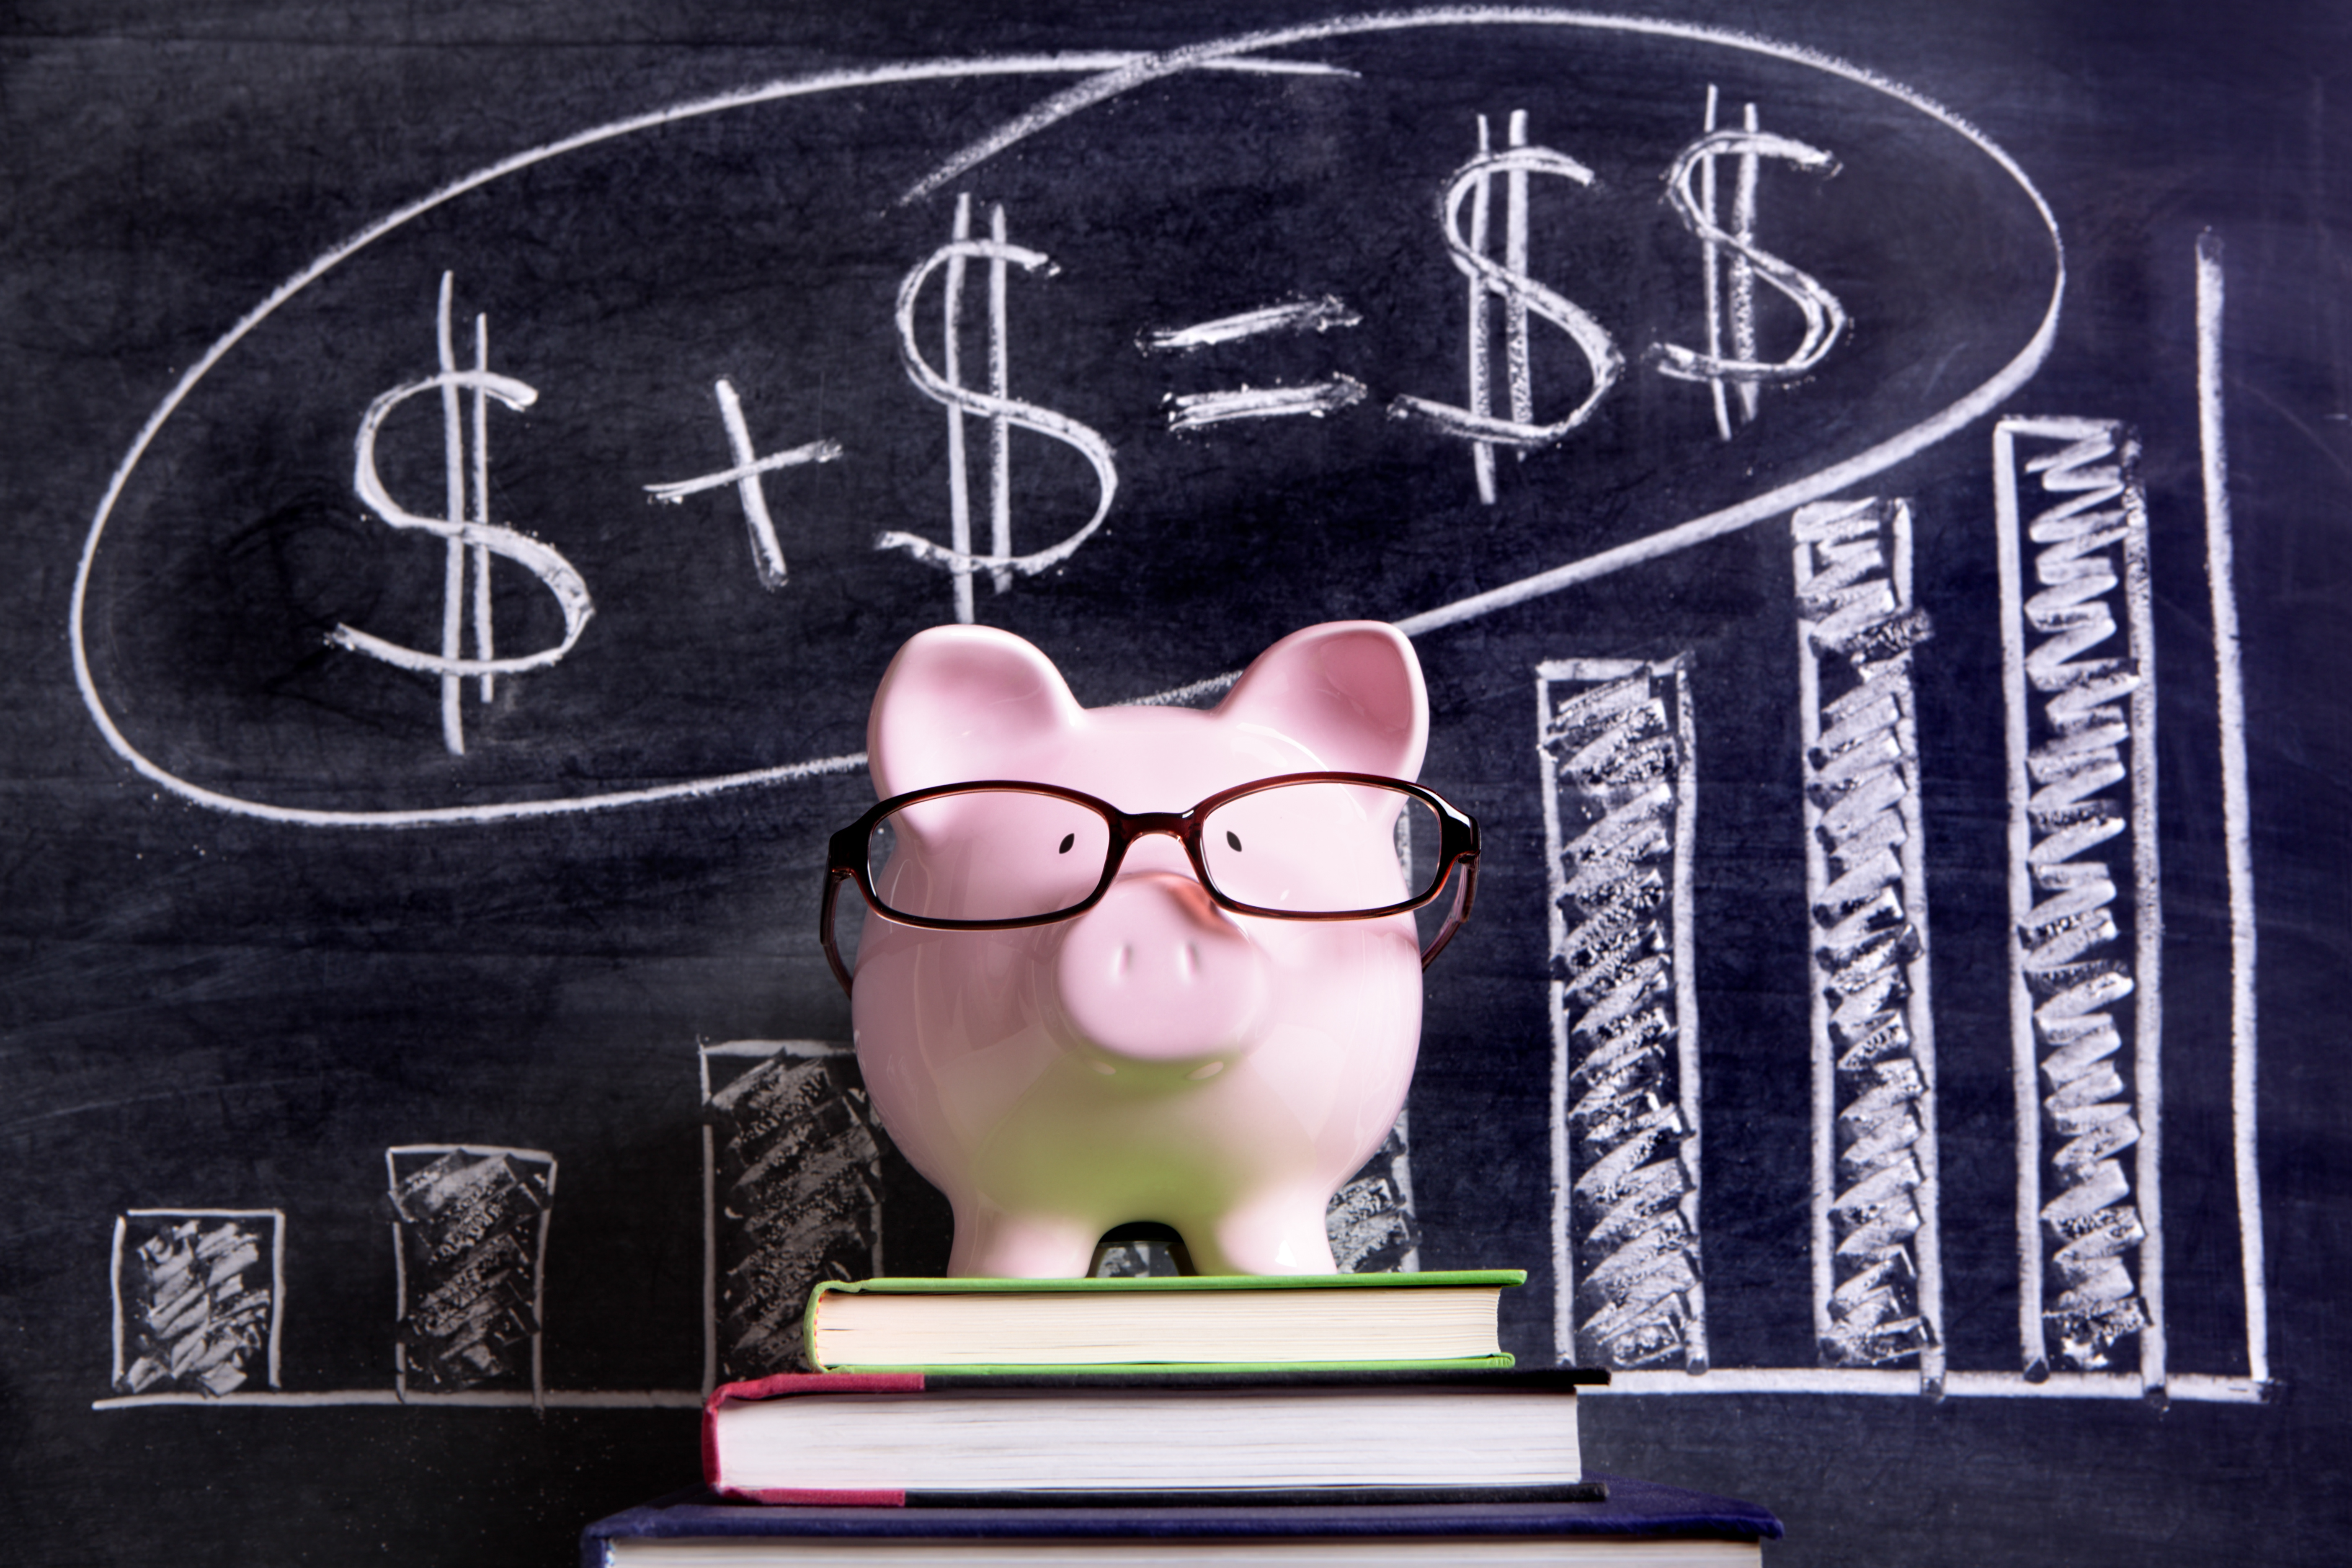 Pink piggy bank with glasses standing on books next to a blackboard with simple money math.  Sharp focus on the piggy bank with blackboard slightly blurred.